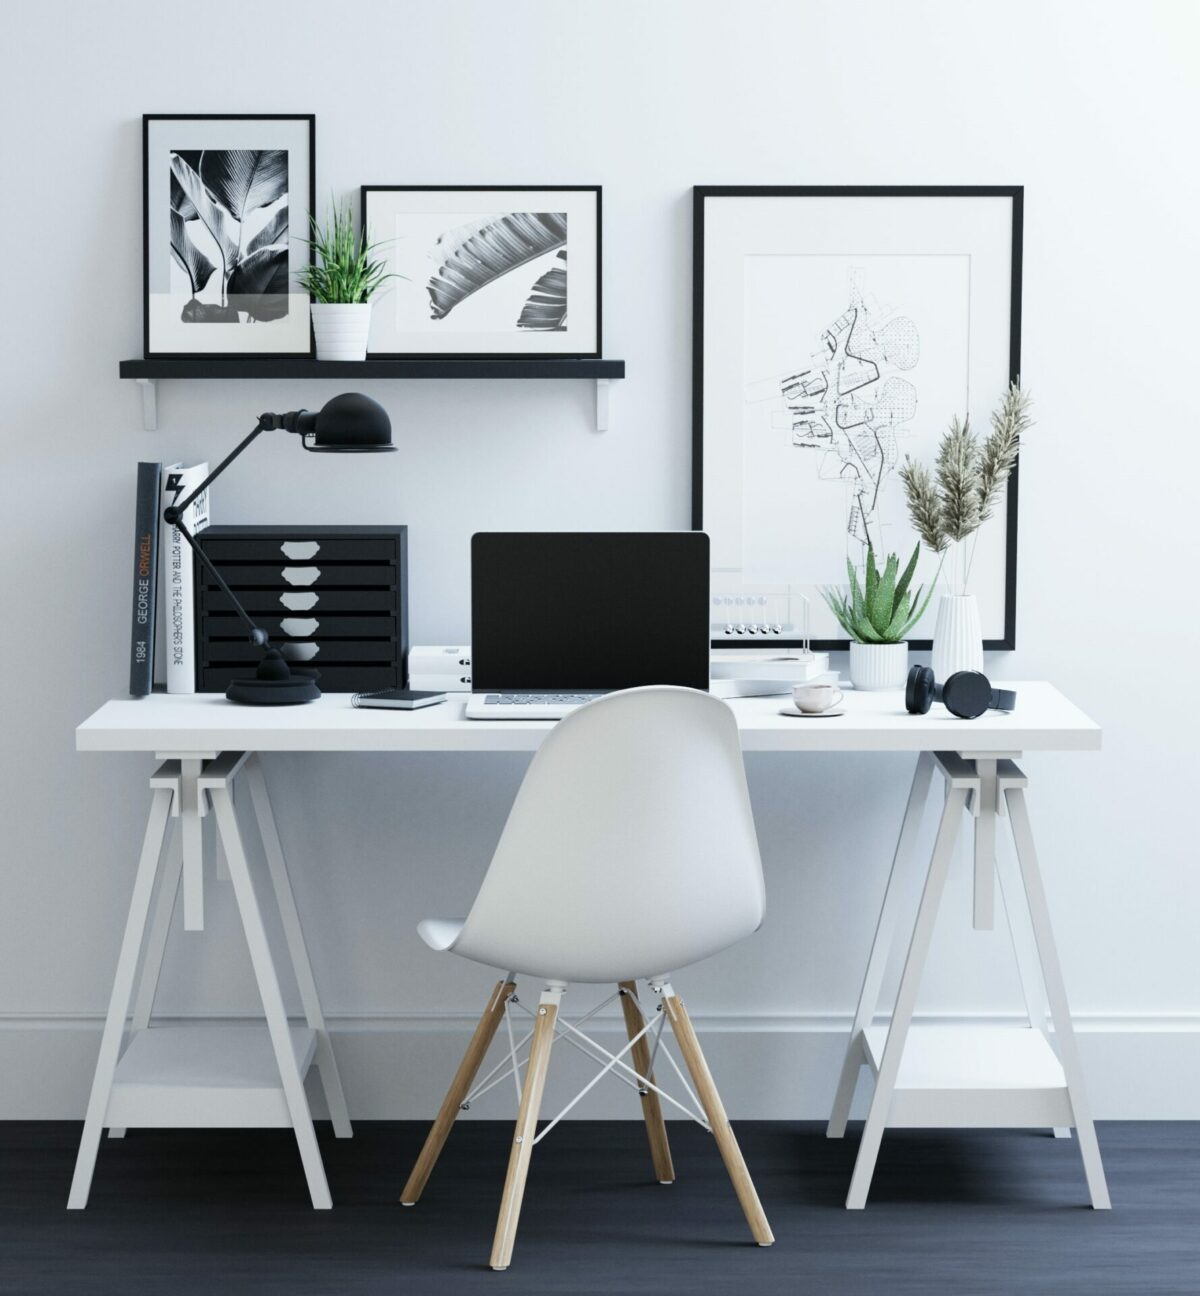 10 easy steps/checklist for an organized home office